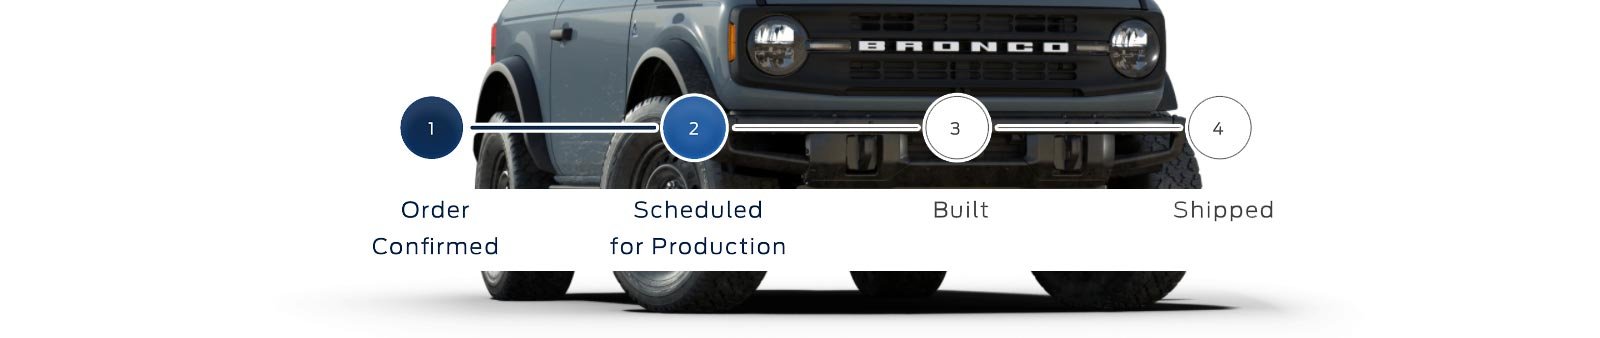 Ford Bronco Scheduled For Production Emails Arriving April 15th